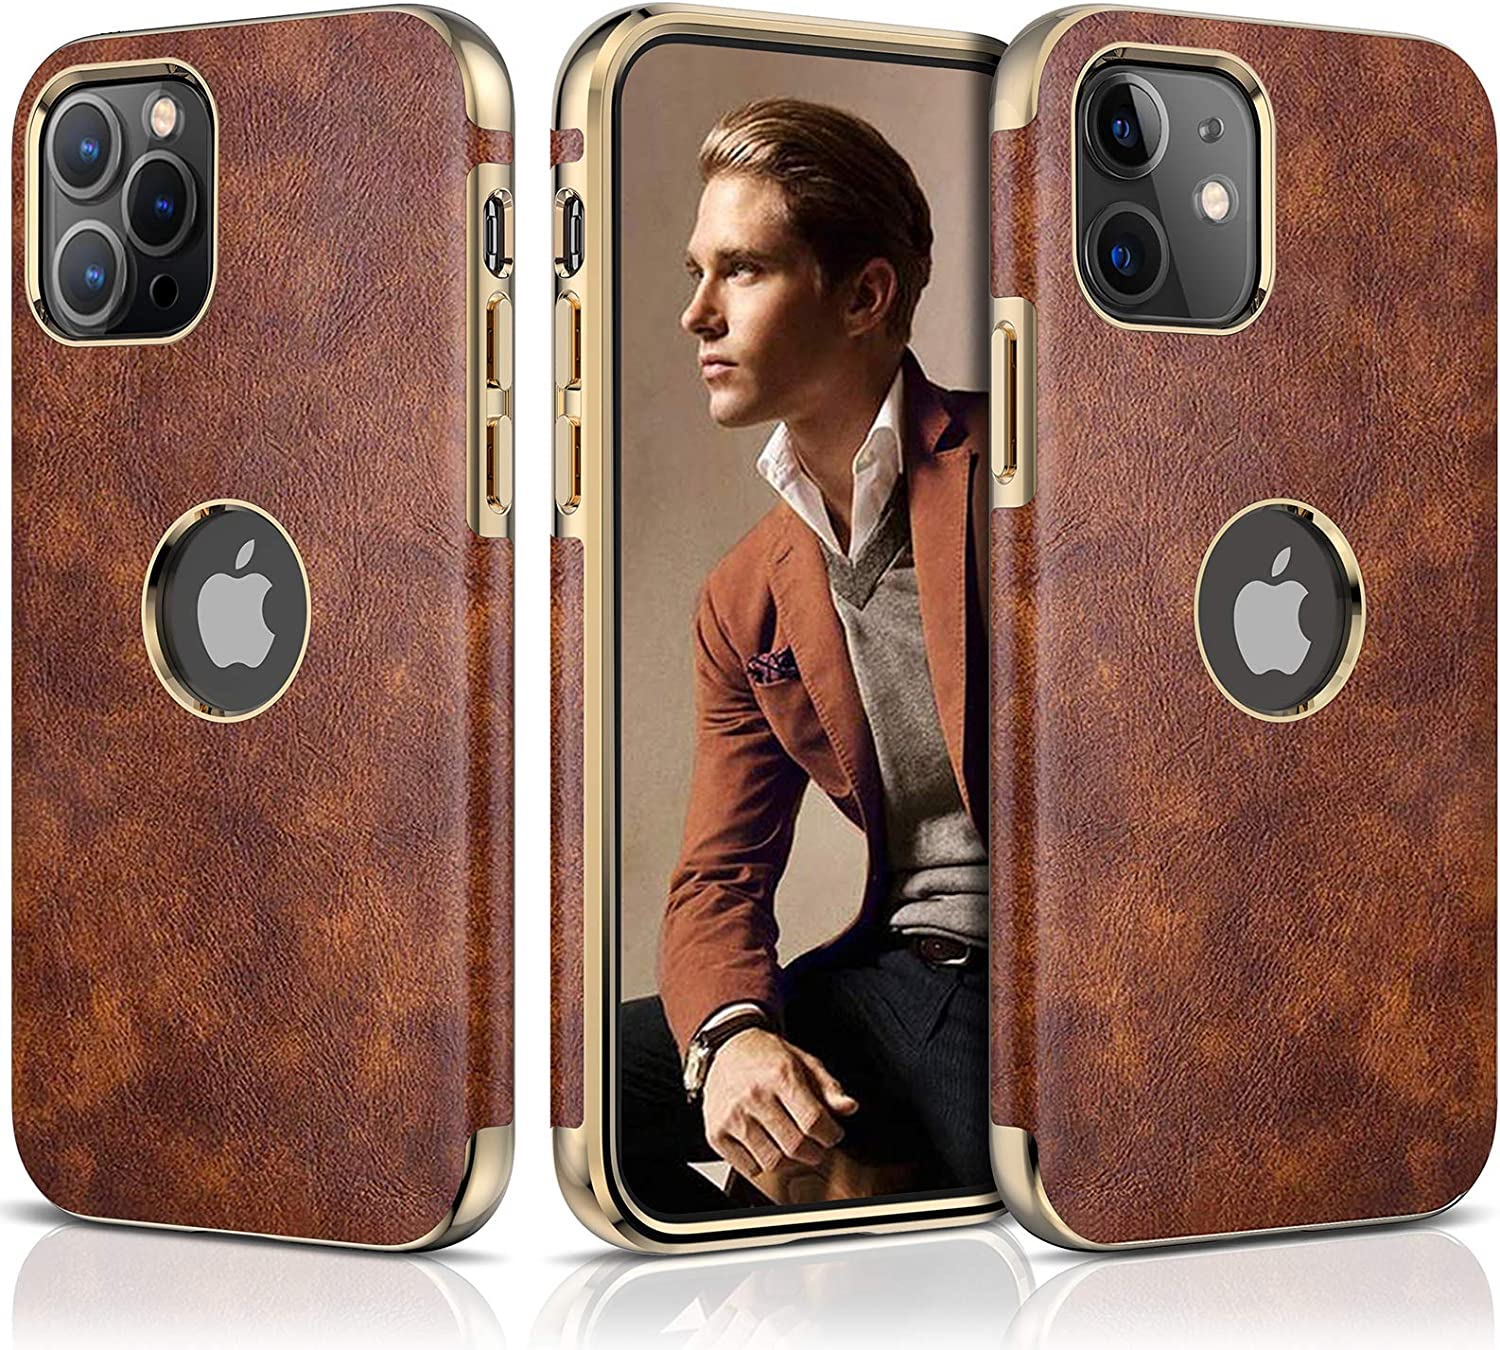 LOHASIC for iPhone 12 Pro Leather Case, Men Women Luxury Cover for iPhone 12 Slim Soft PU Flexible Bumper Non-Slip Grip Anti-Scratch Full Body Protective Phone Cases for iPhone 12/12 Pro 6.1